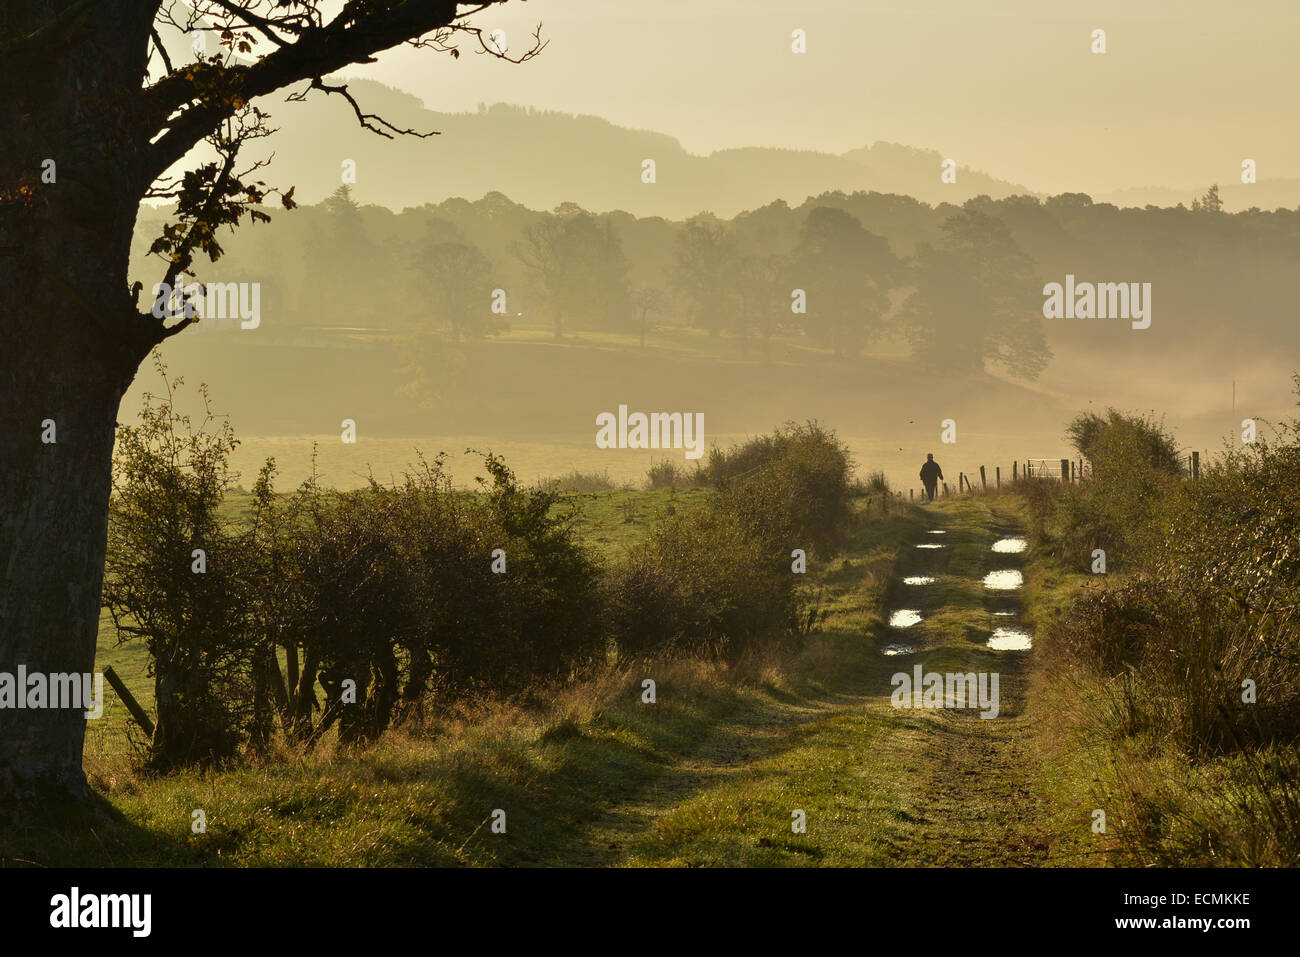 silhouette of solitary man in golden age enjoying a walk along a country lane during a beautiful autumn sunrise - Stock Image